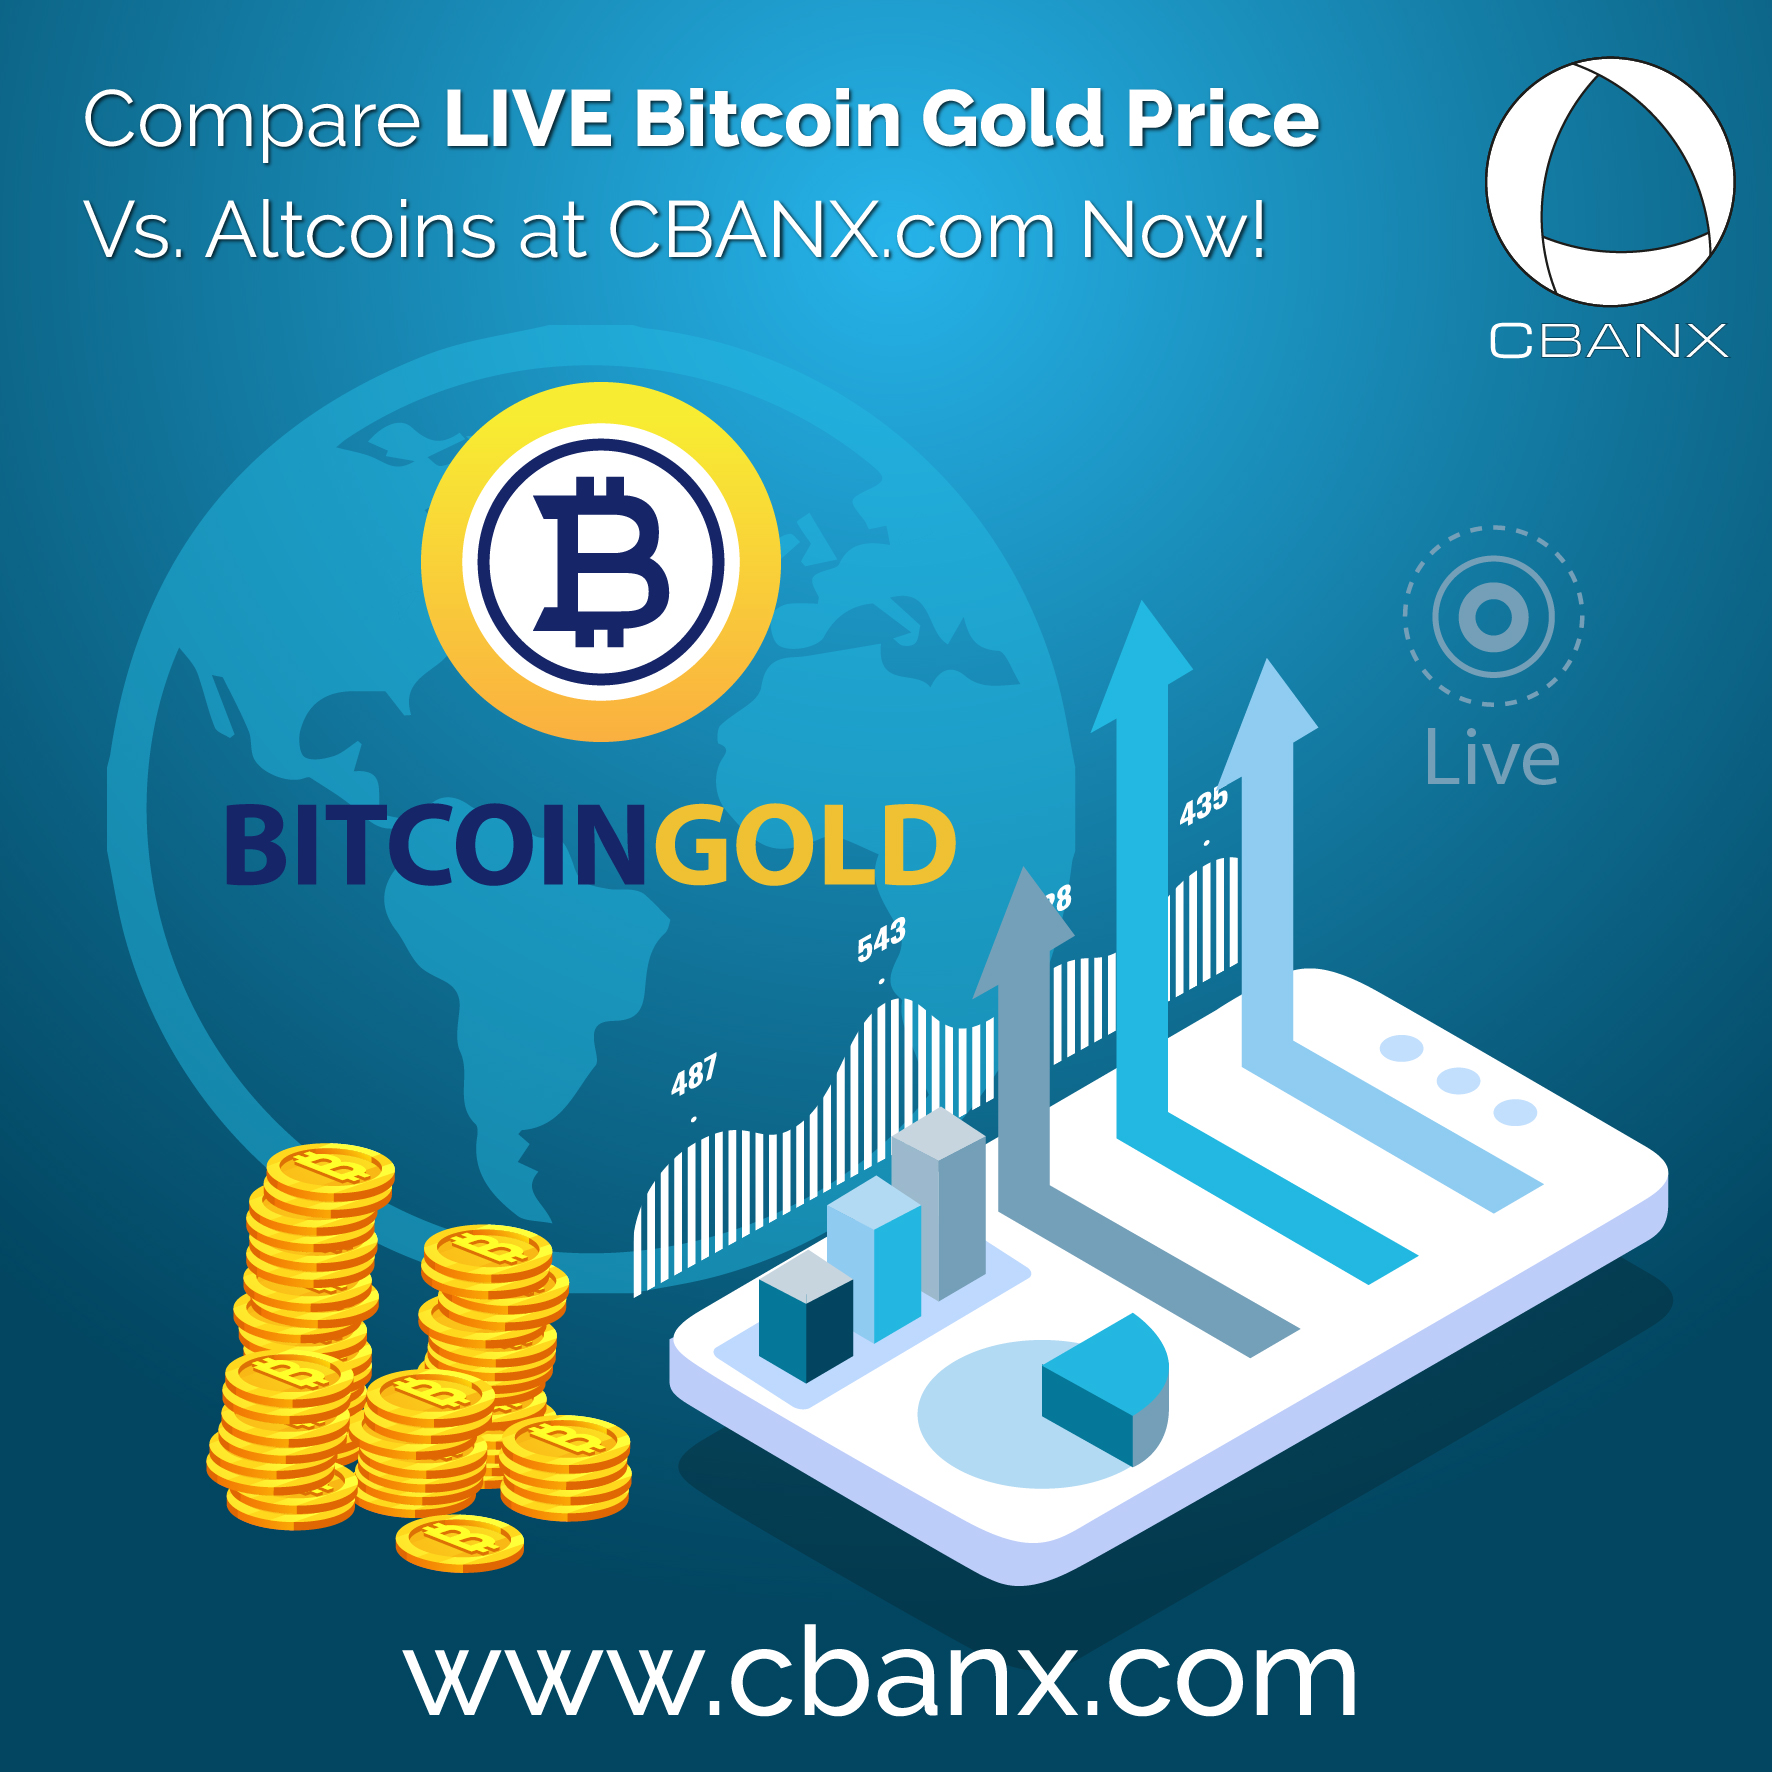 Compare LIVE Bitcoin Gold Price Vs. Altcoins at CBANX.com Now!